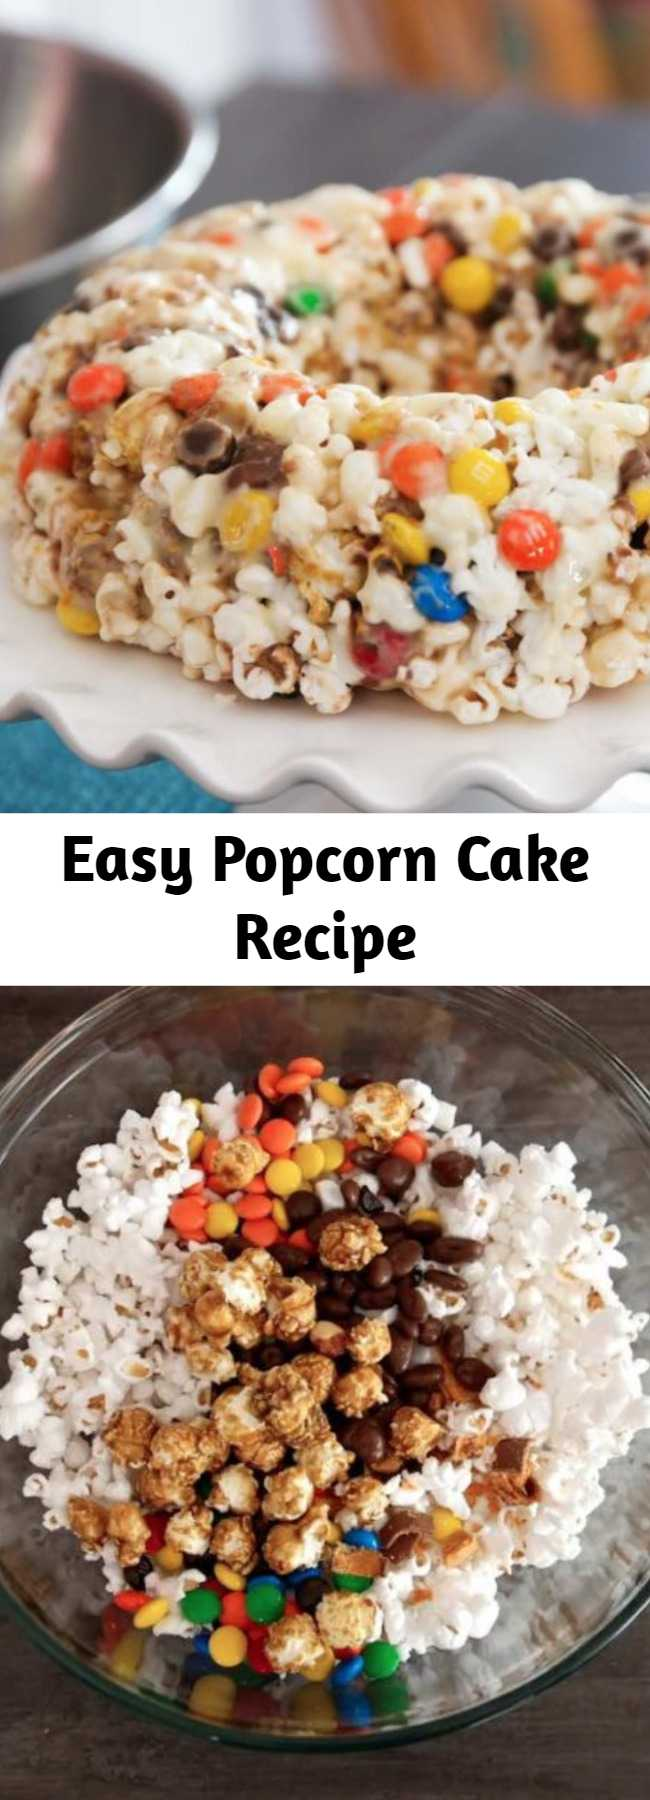 Easy Popcorn Cake Recipe - Popcorn Cake has all the flavors you love - popcorn, candy, marshmallows - made into an easy no-bake dessert in a bundt pan! It's a family favorite that's crunchy, chewy and sweet - perfect for parties, movie nights, weekend treats and any festive occasion.